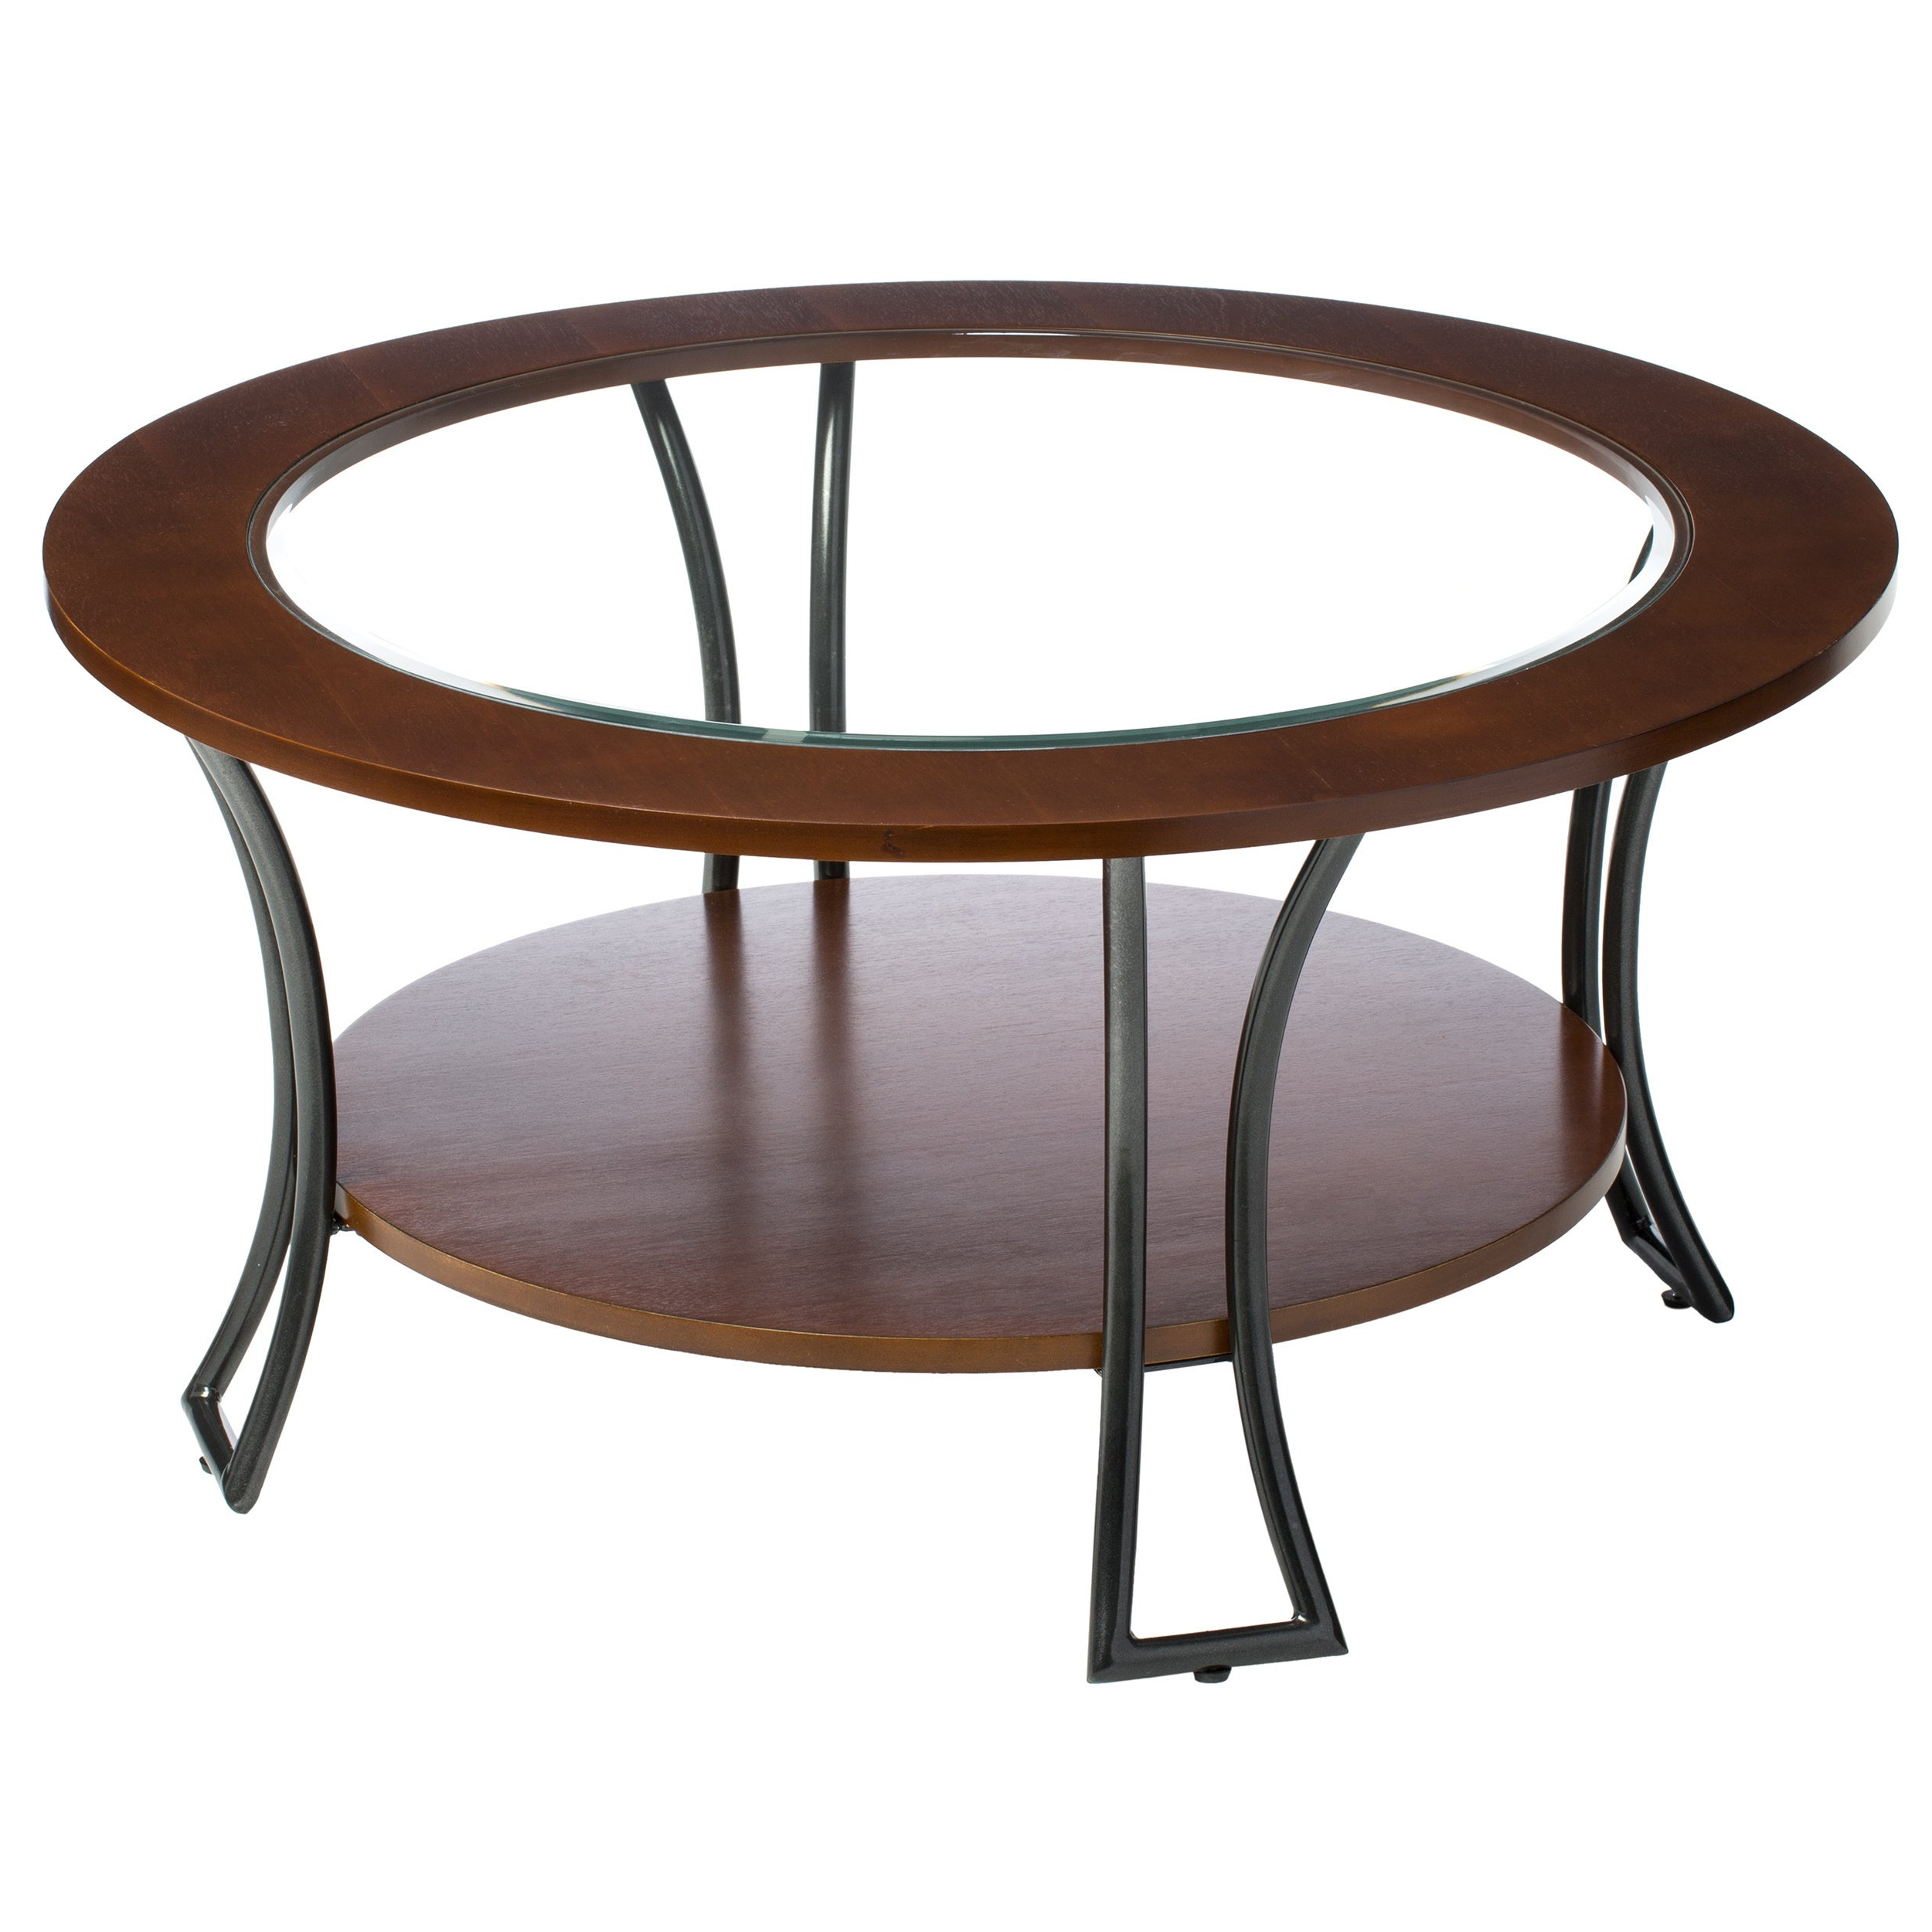 Copper Grove Carlisle Walnut/ Charcoal Grey Round Coffee Table With Regard To Popular Copper Grove Halesia Chocolate Bronze Round Coffee Tables (View 5 of 20)